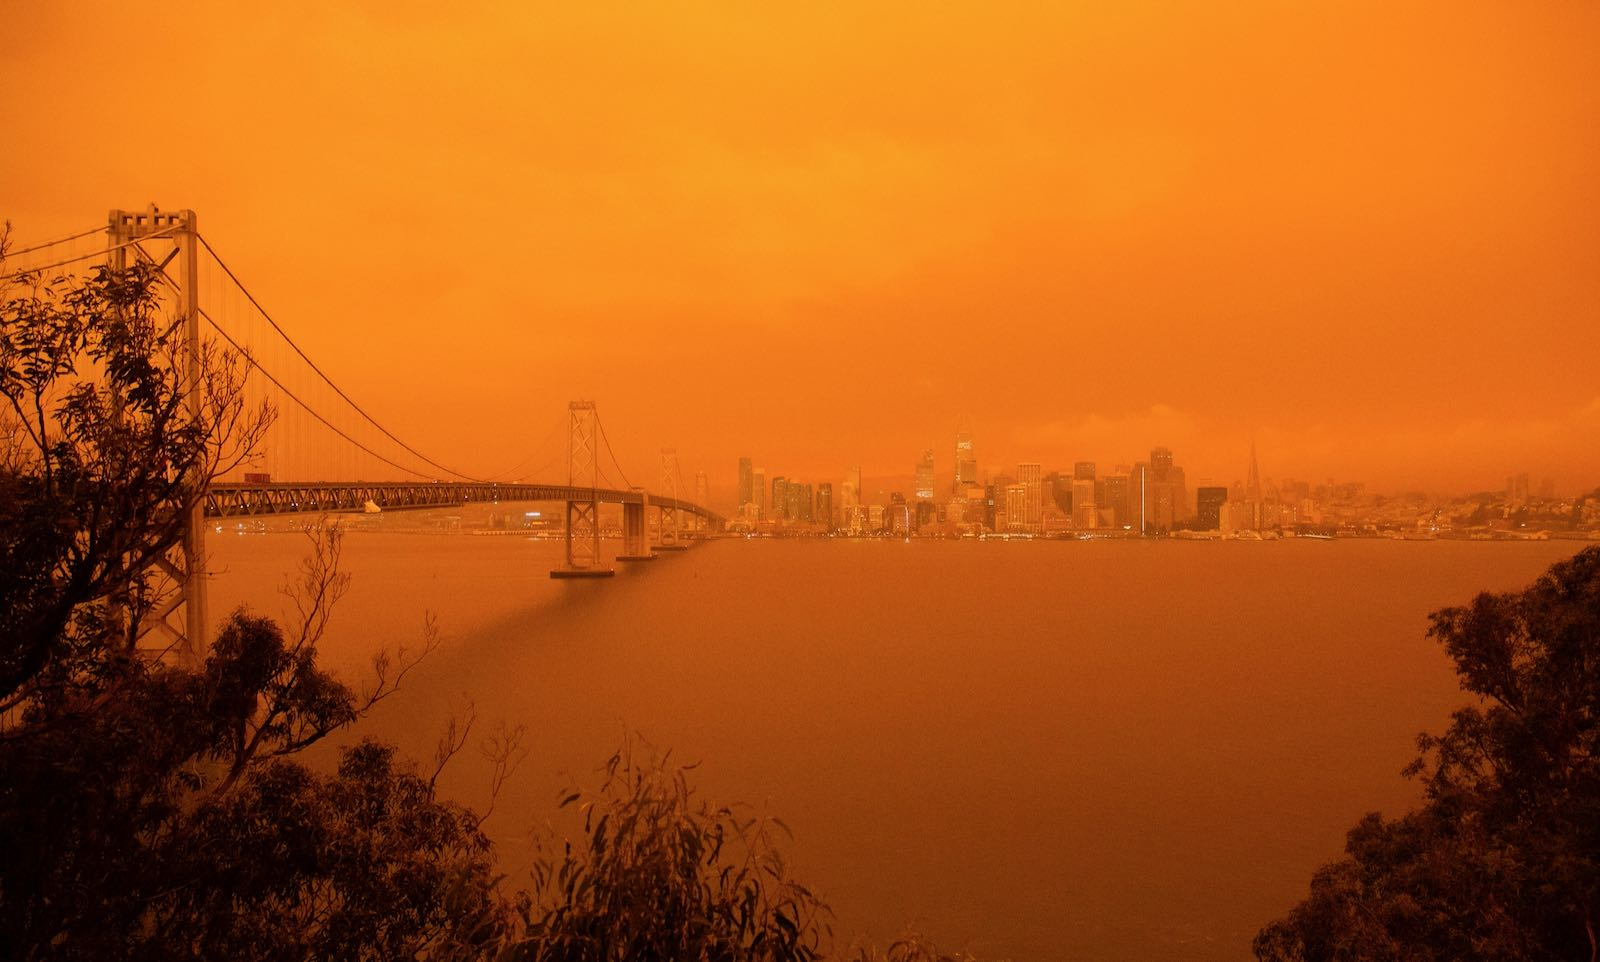 San Francisco and Bay Area shrouded in orange smoke and haze from wildfires